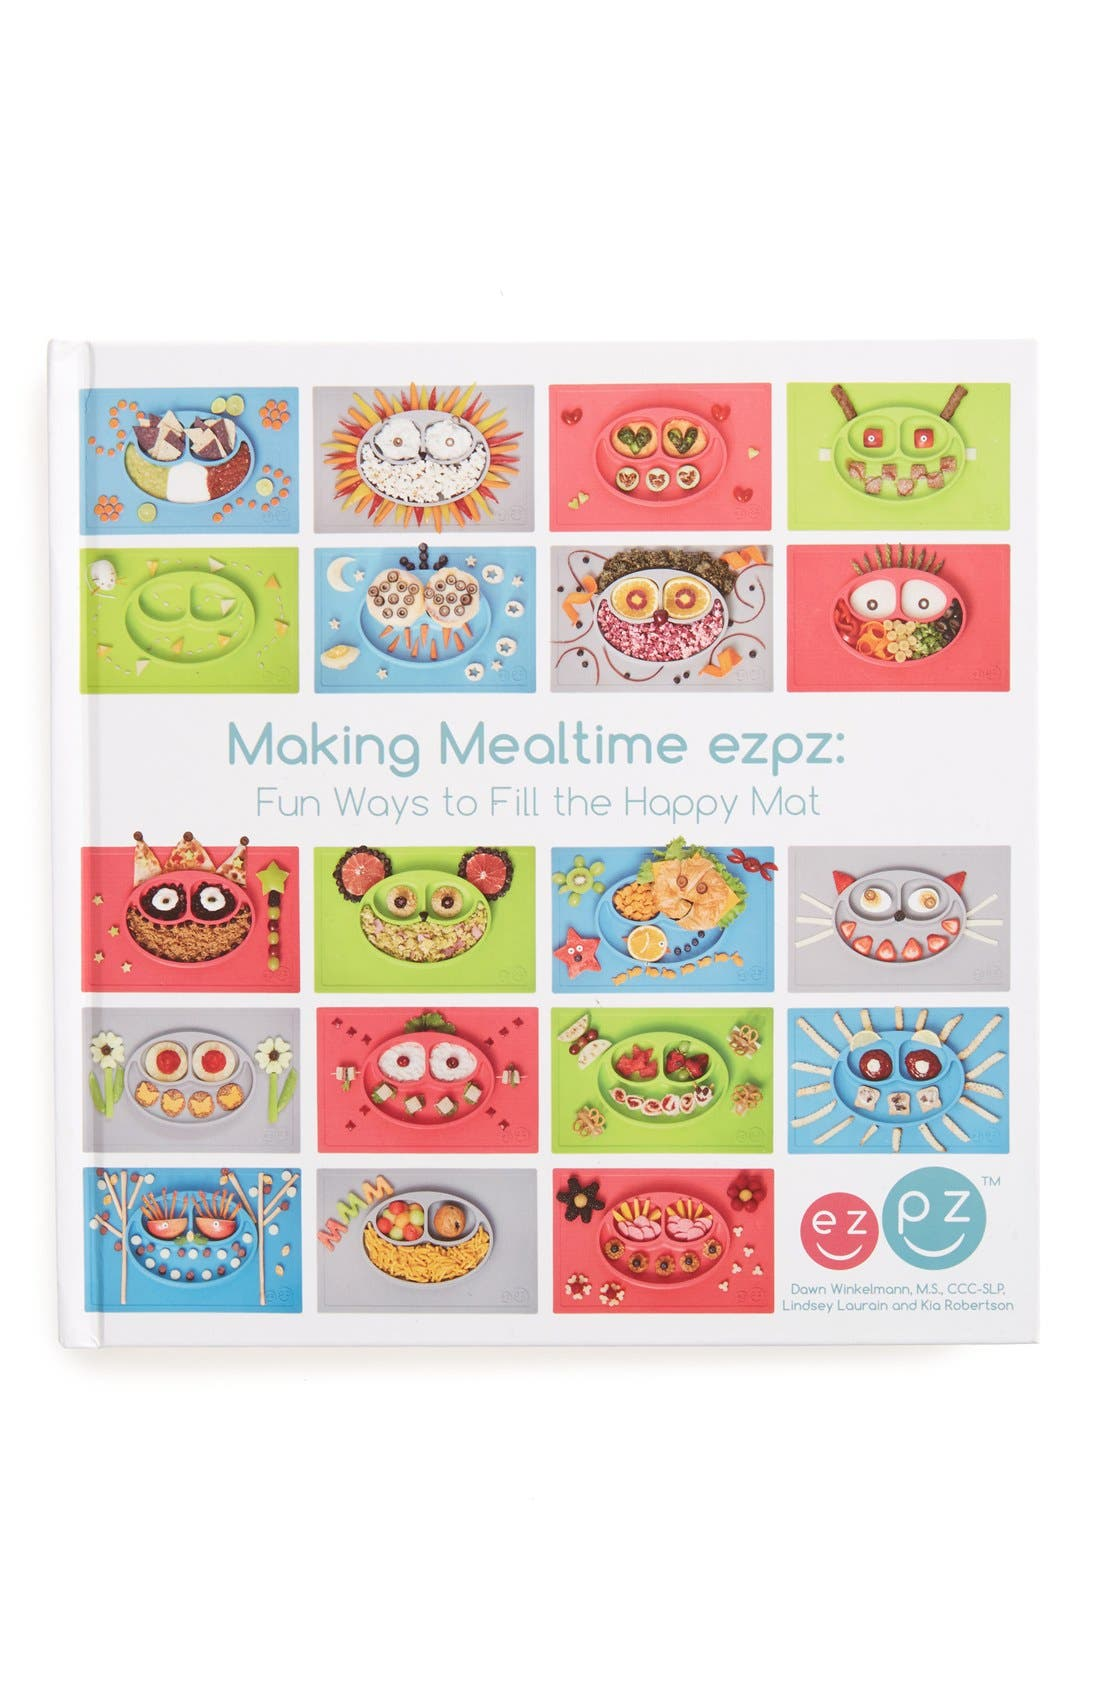 Main Image - Making Mealtime ezpz: Fun Ways to Fill the Happy Mat Book